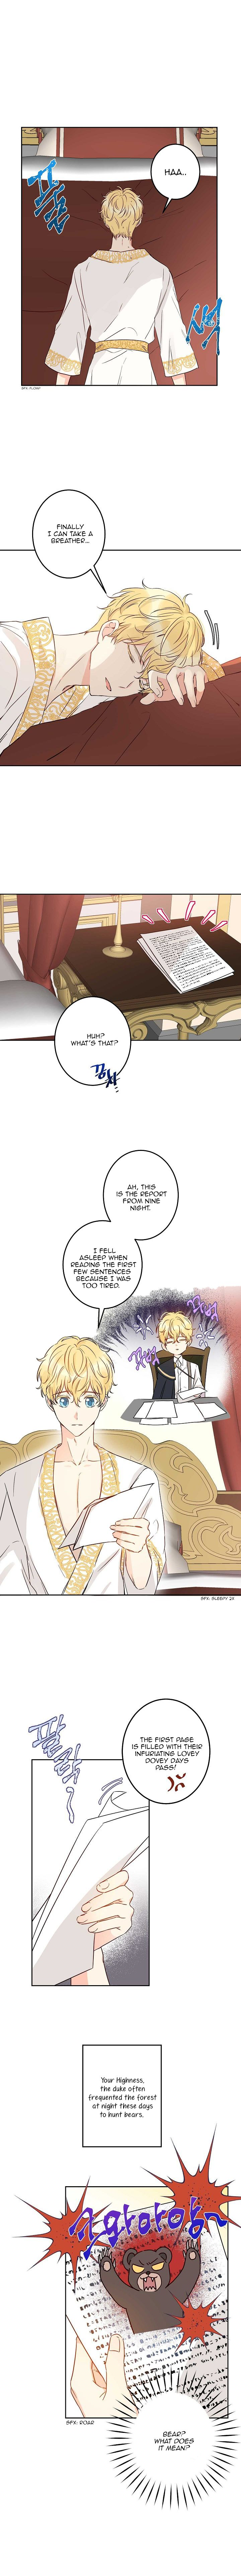 This Is An Obvious Fraudulent Marriage - chapter 51 - #1